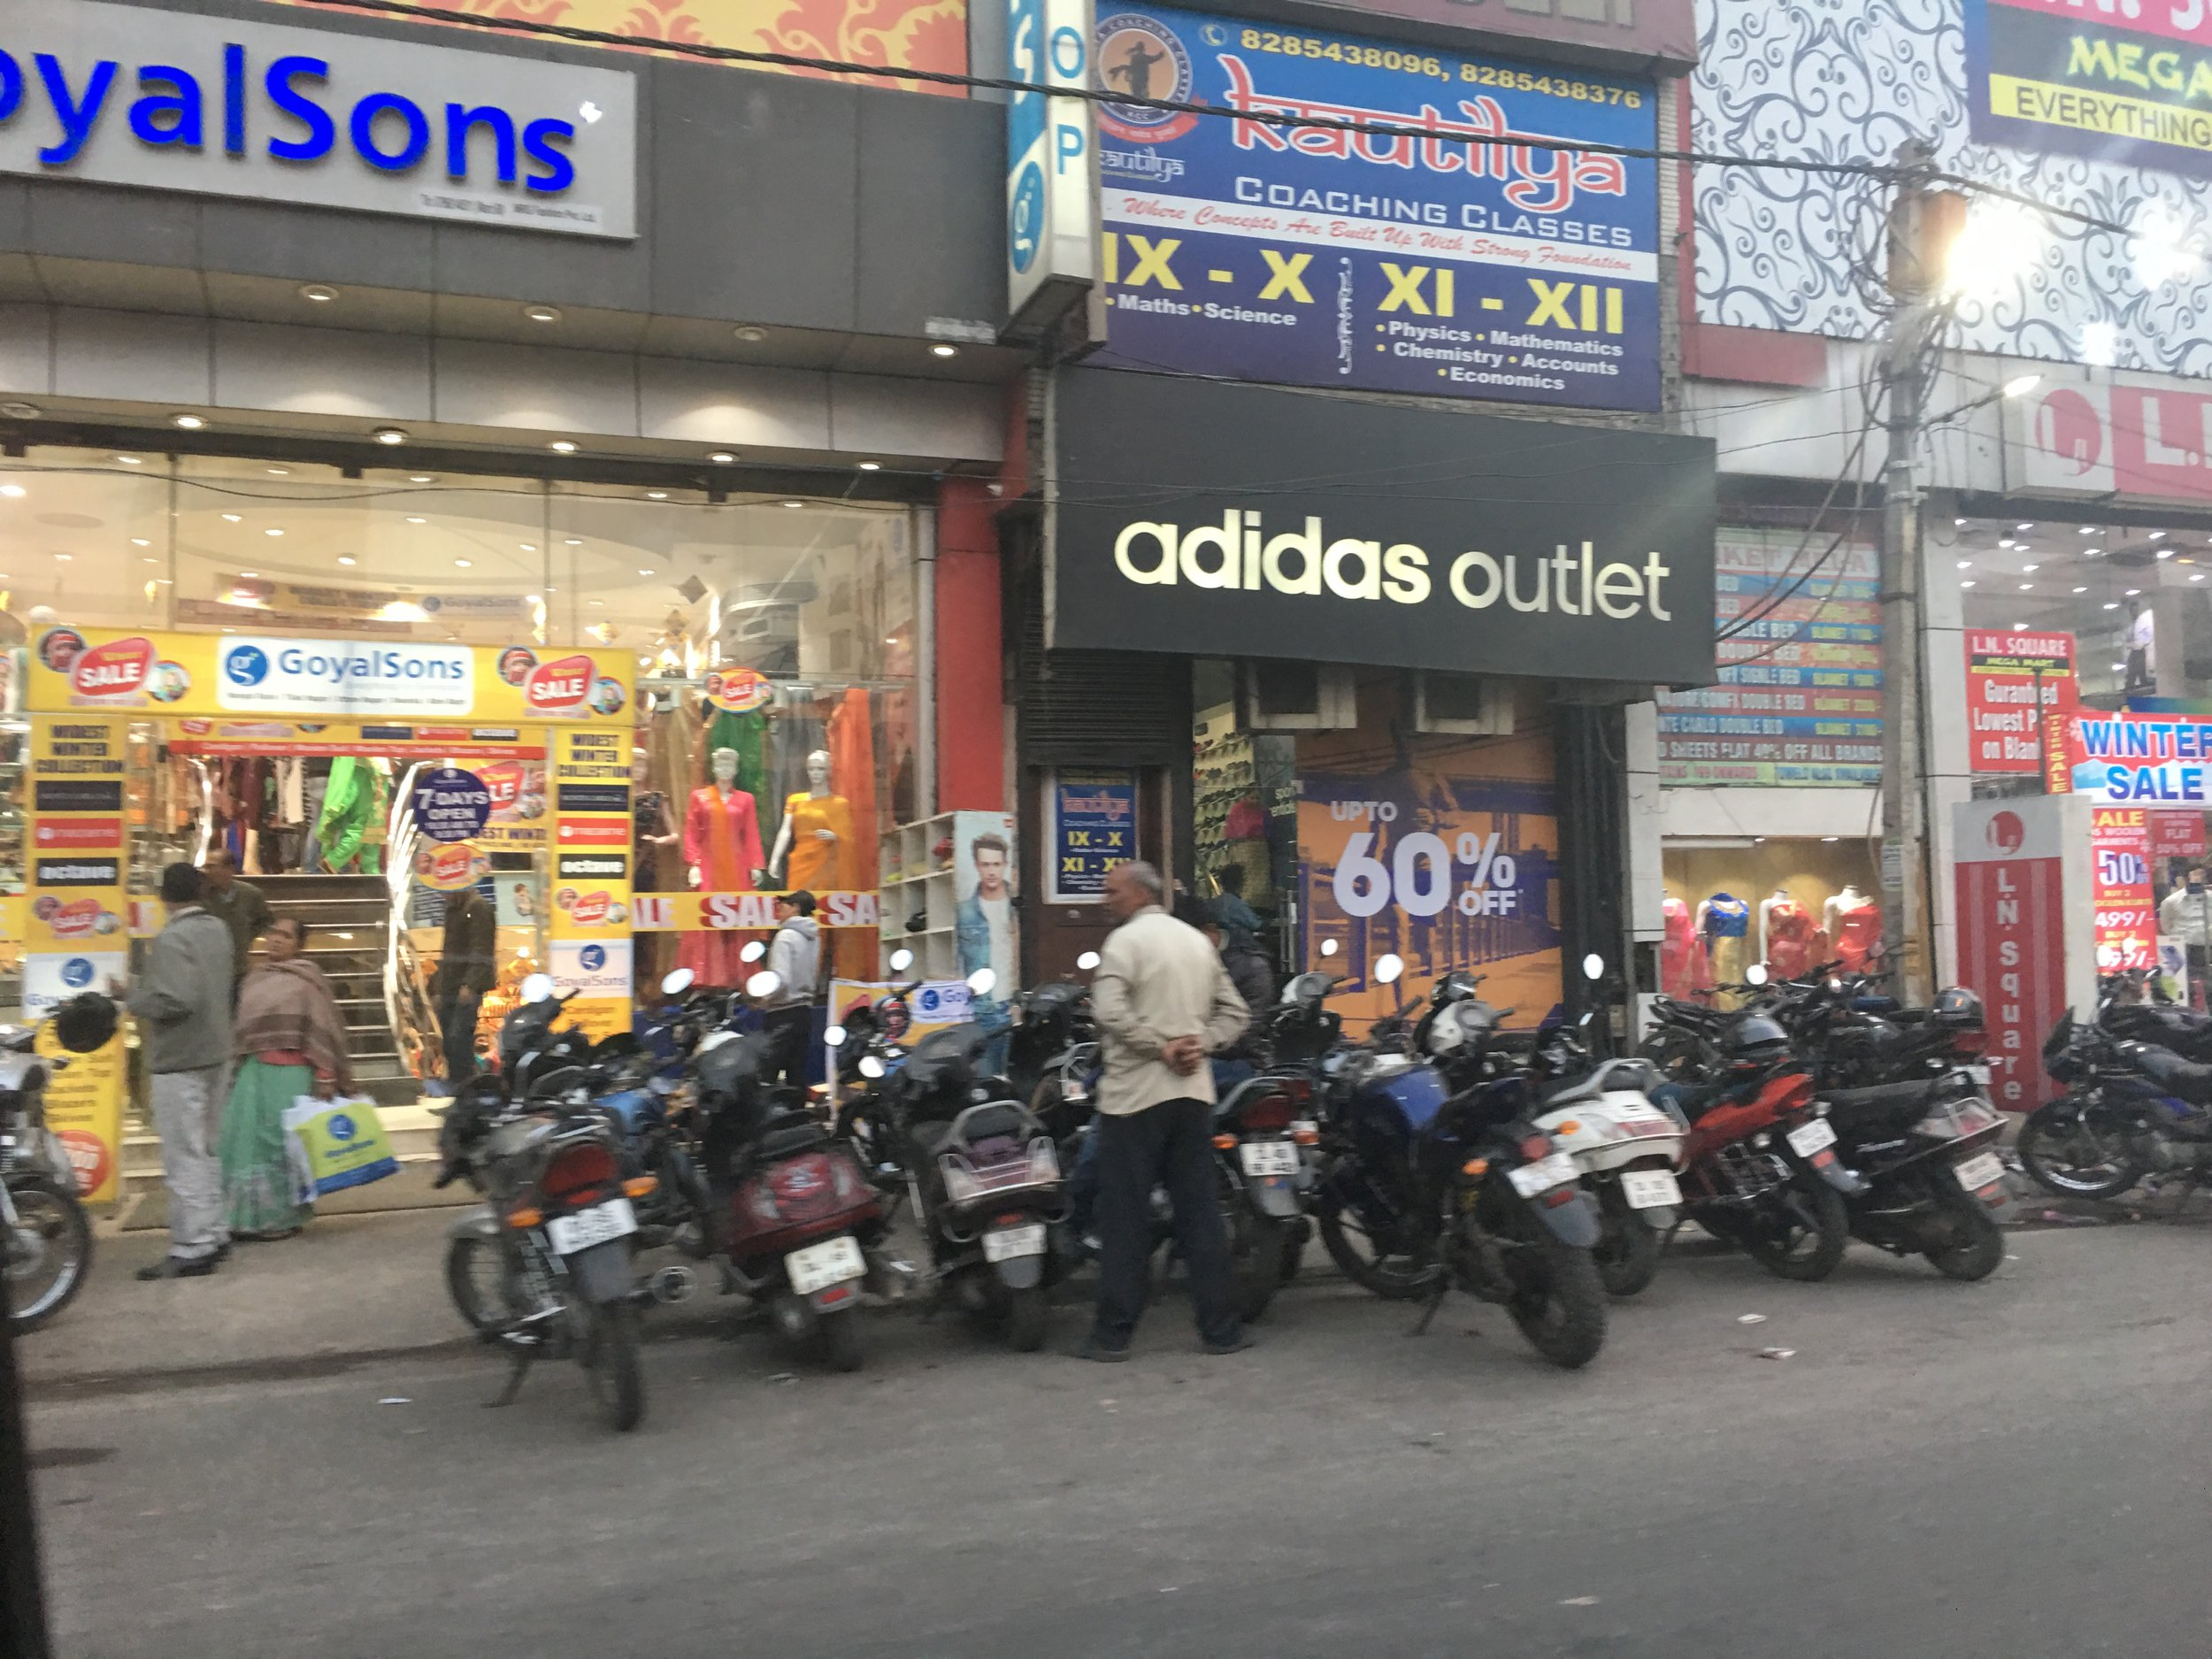 There are lots of motorbikes in Delhi!